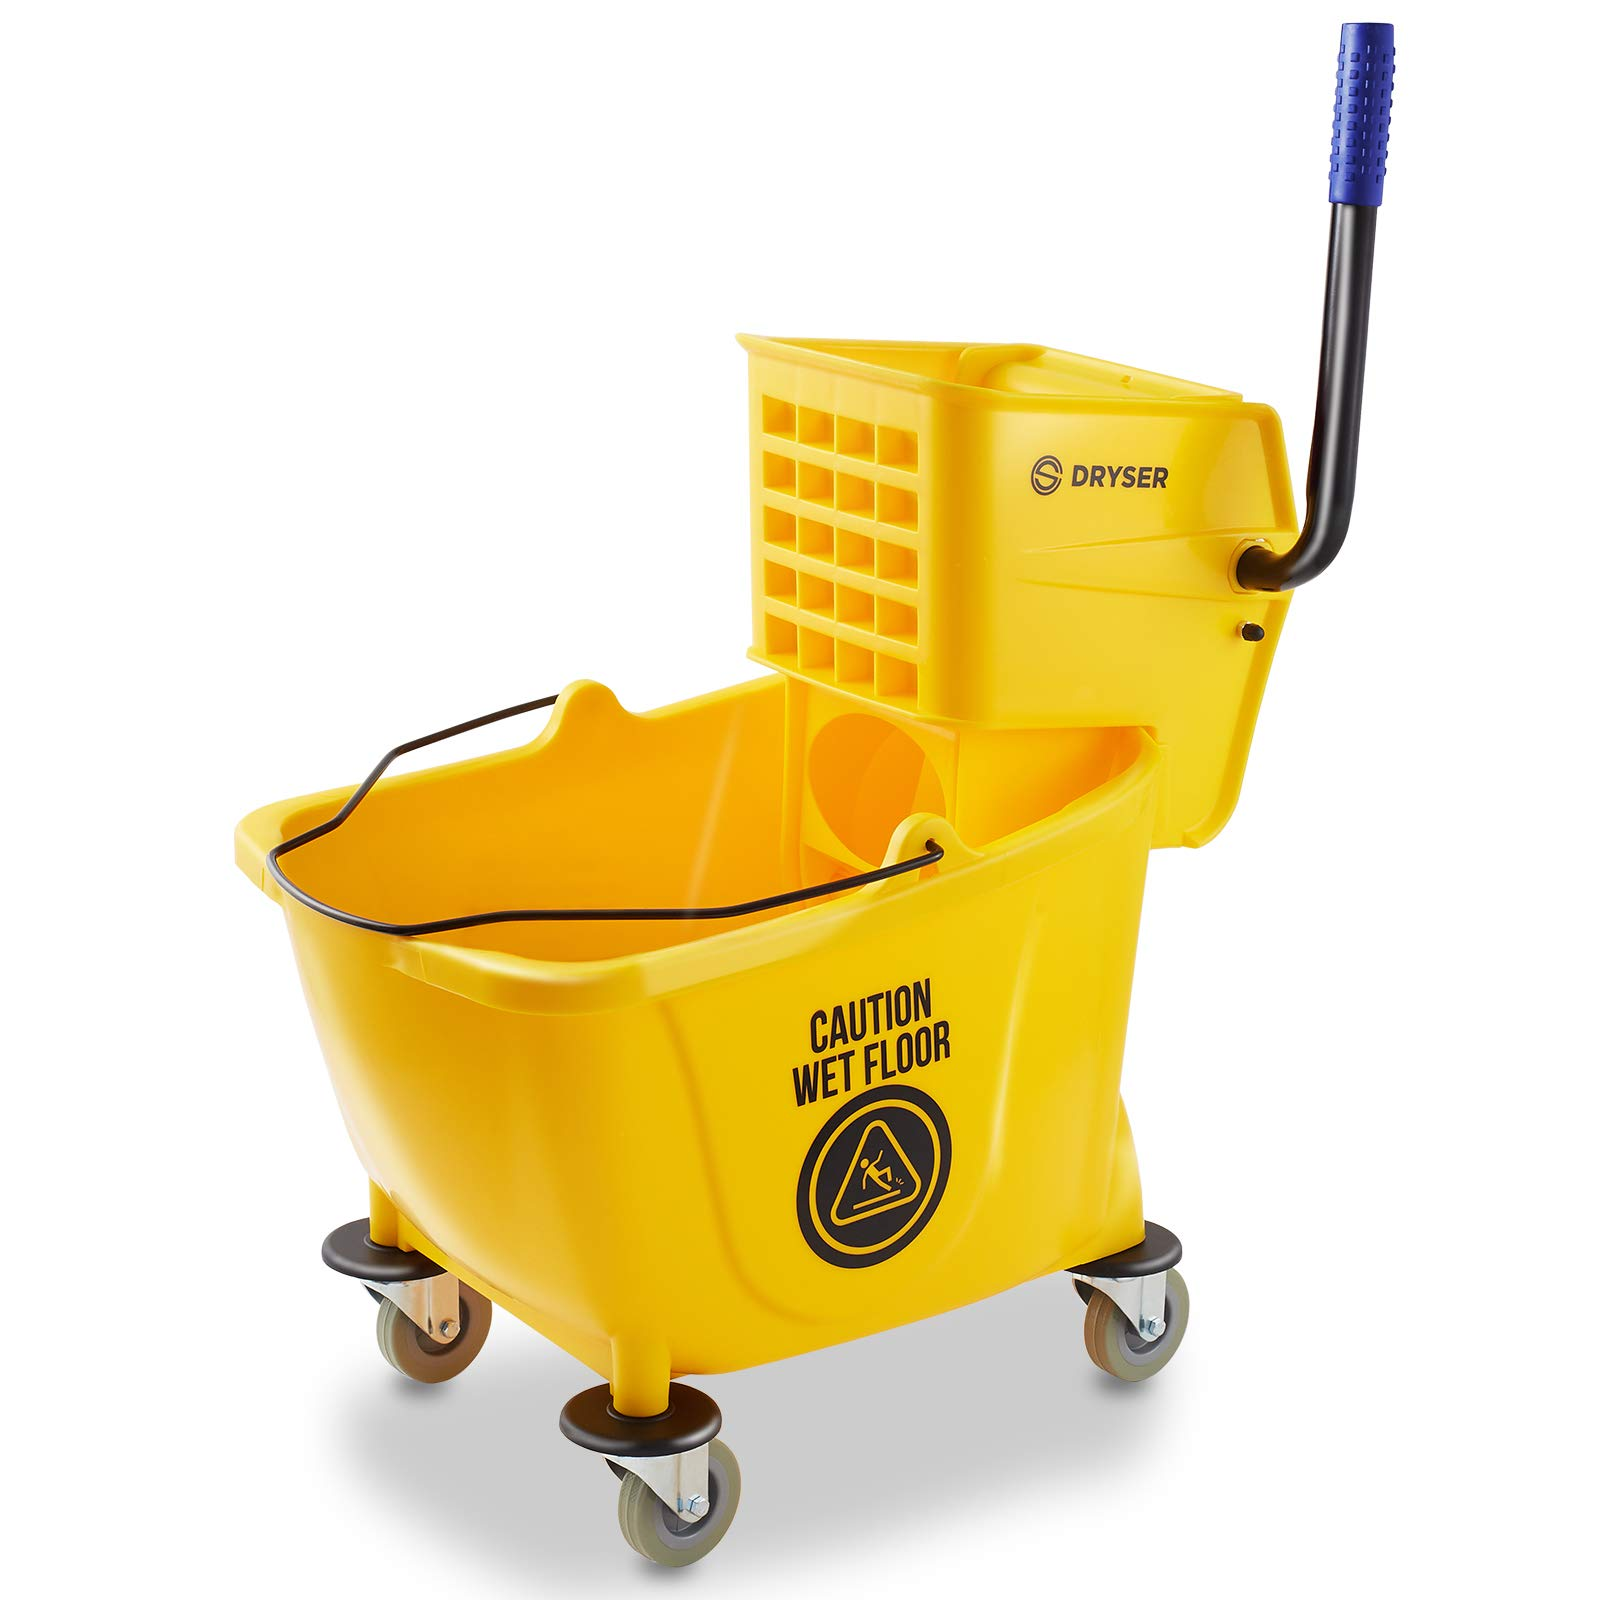 Dryser Commercial Mop Bucket with Side Press Wringer, 33 Quart, Yellow by Dryser (Image #1)